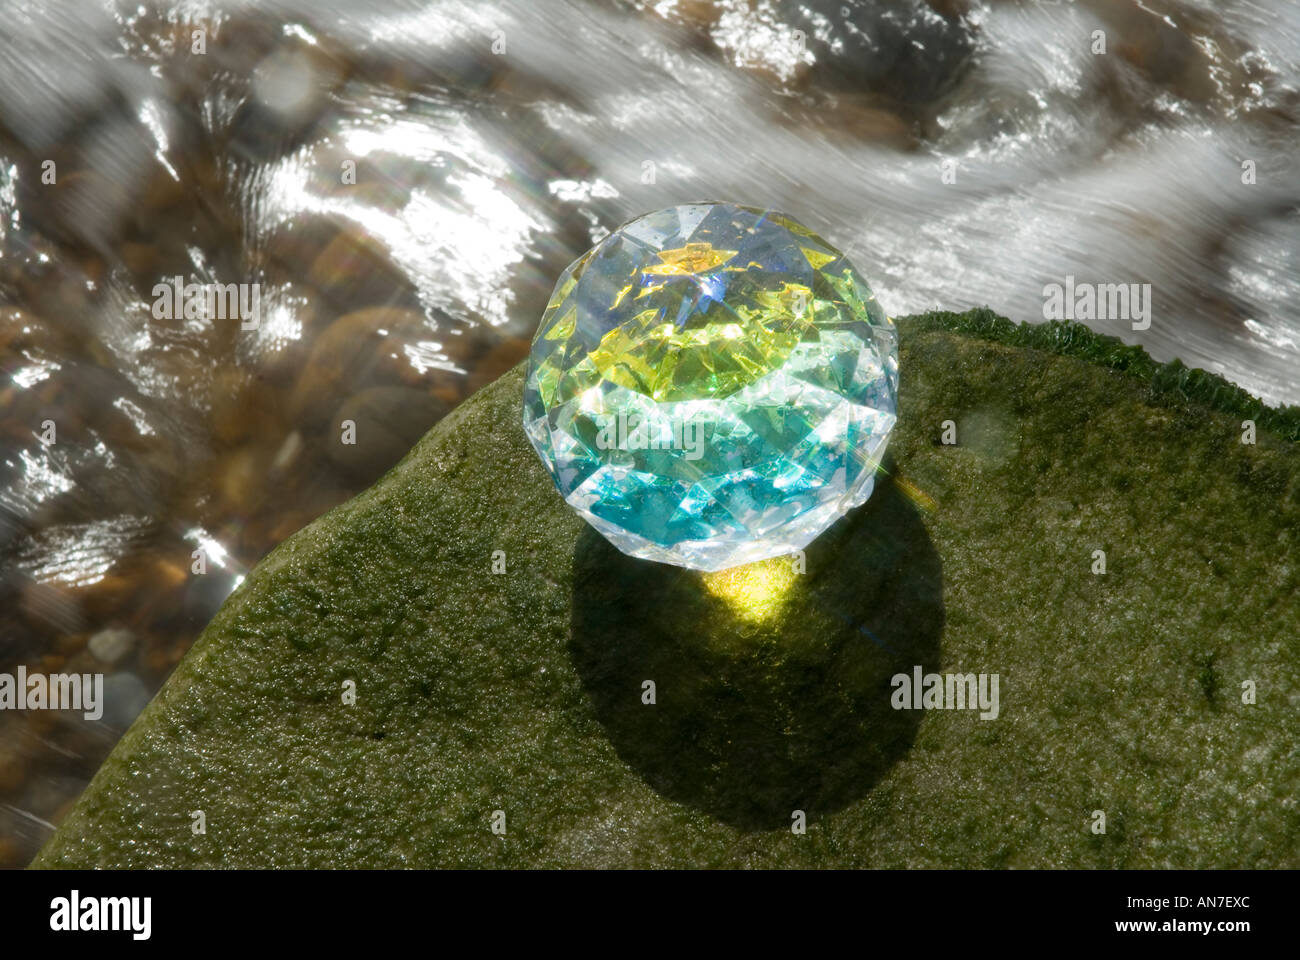 crystal cut glass object on pebble beach - Stock Image